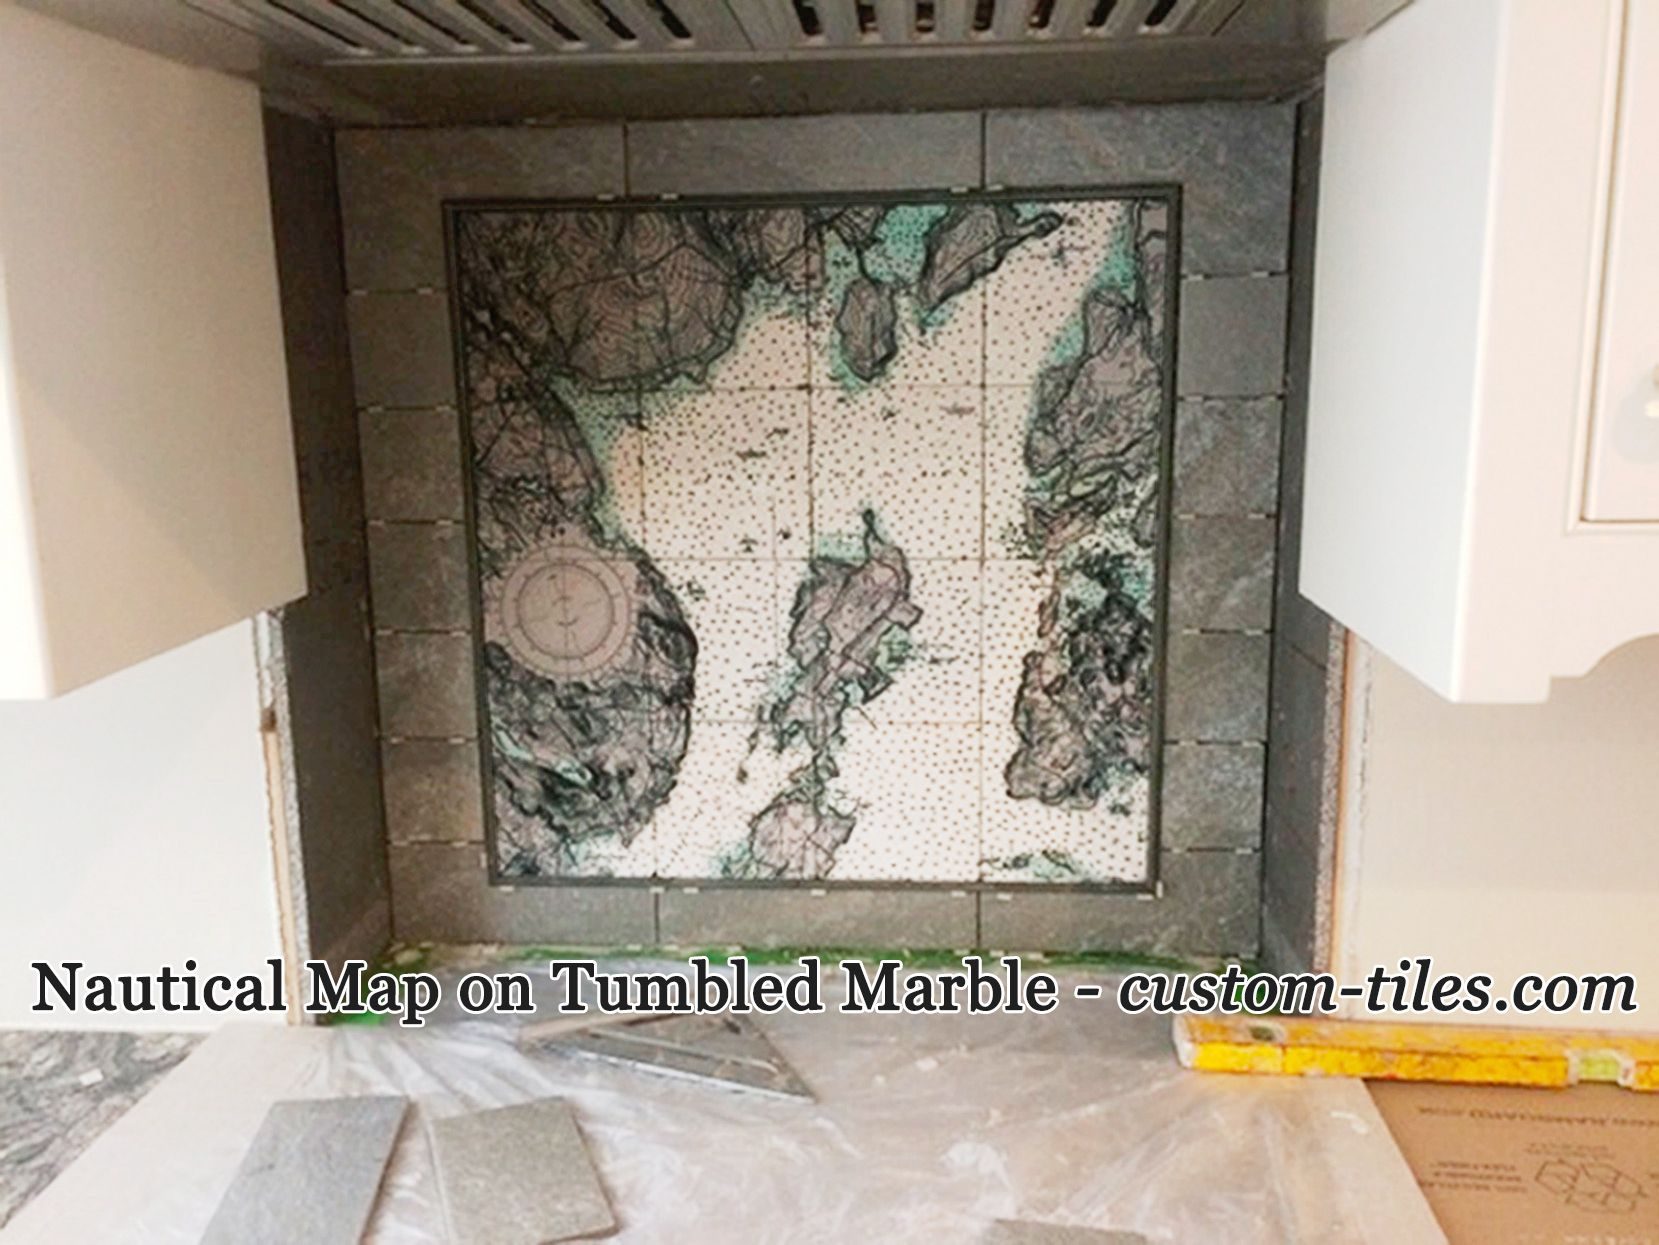 Nautical map on custom printed tile tumbled marble tiles for nautical map on custom printed tile tumbled marble tiles for kitchen backsplash digital tile dailygadgetfo Image collections